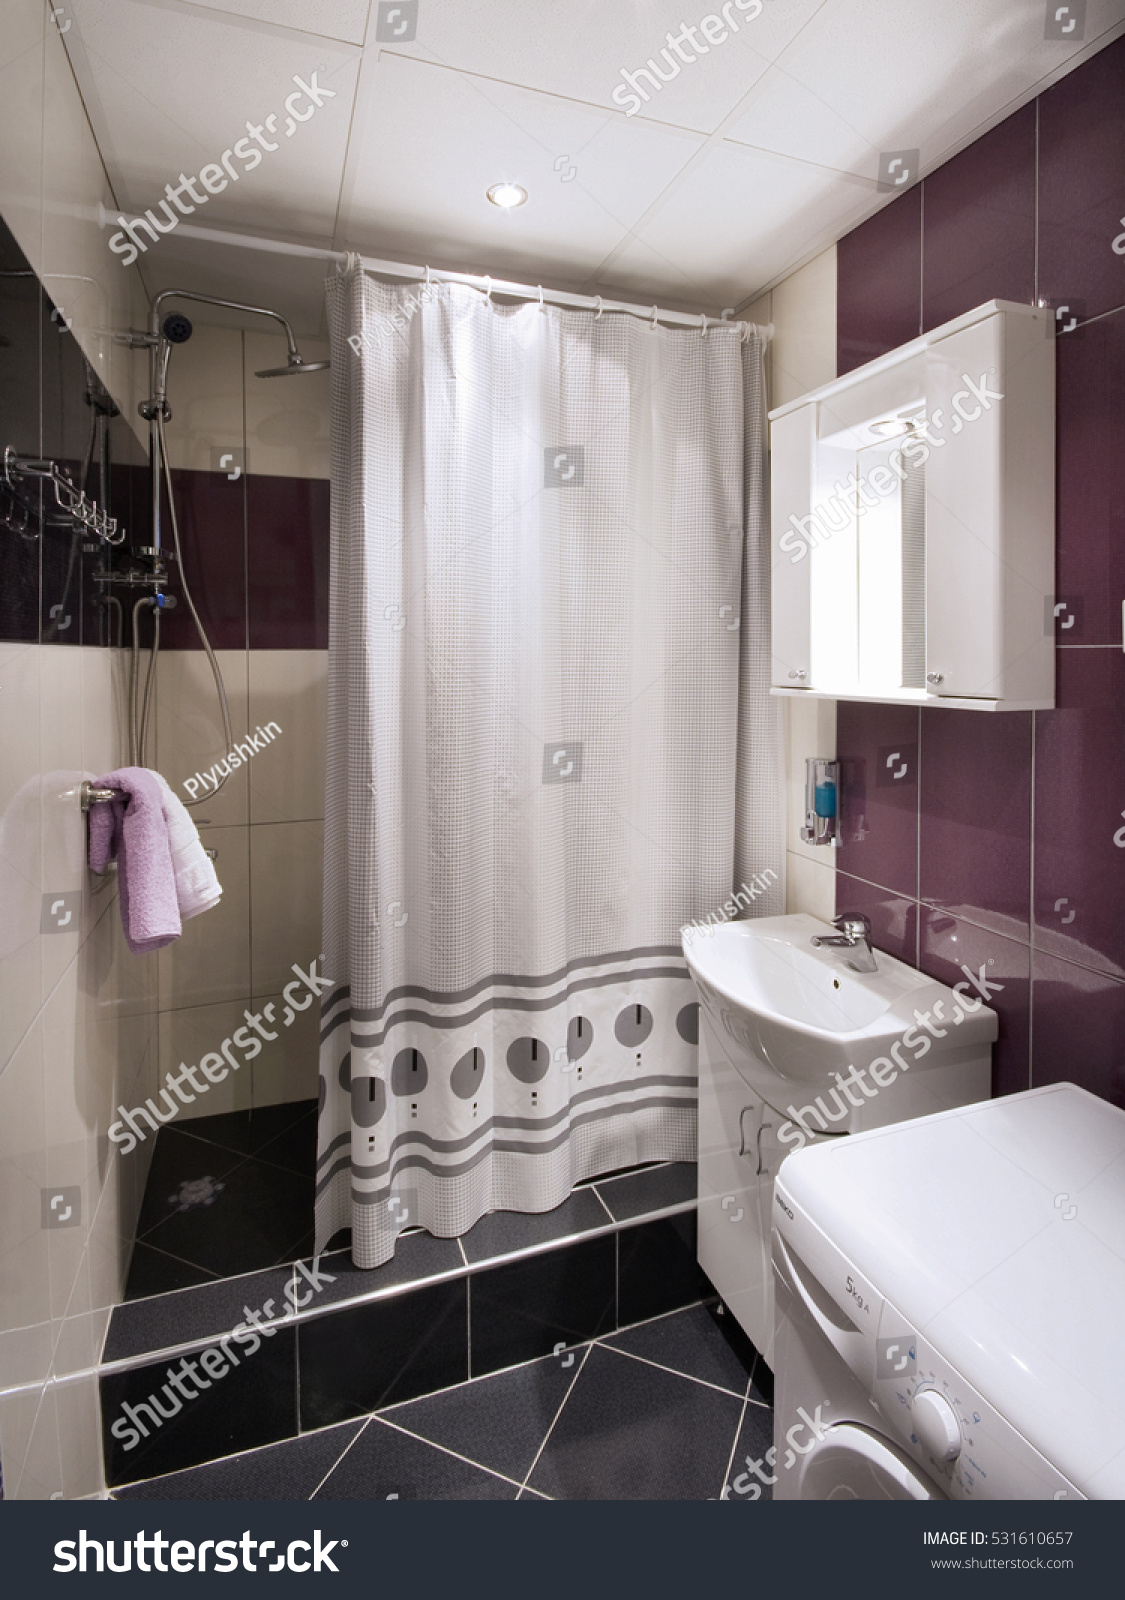 Regular Toilet In An Apartment Or Hotel Room